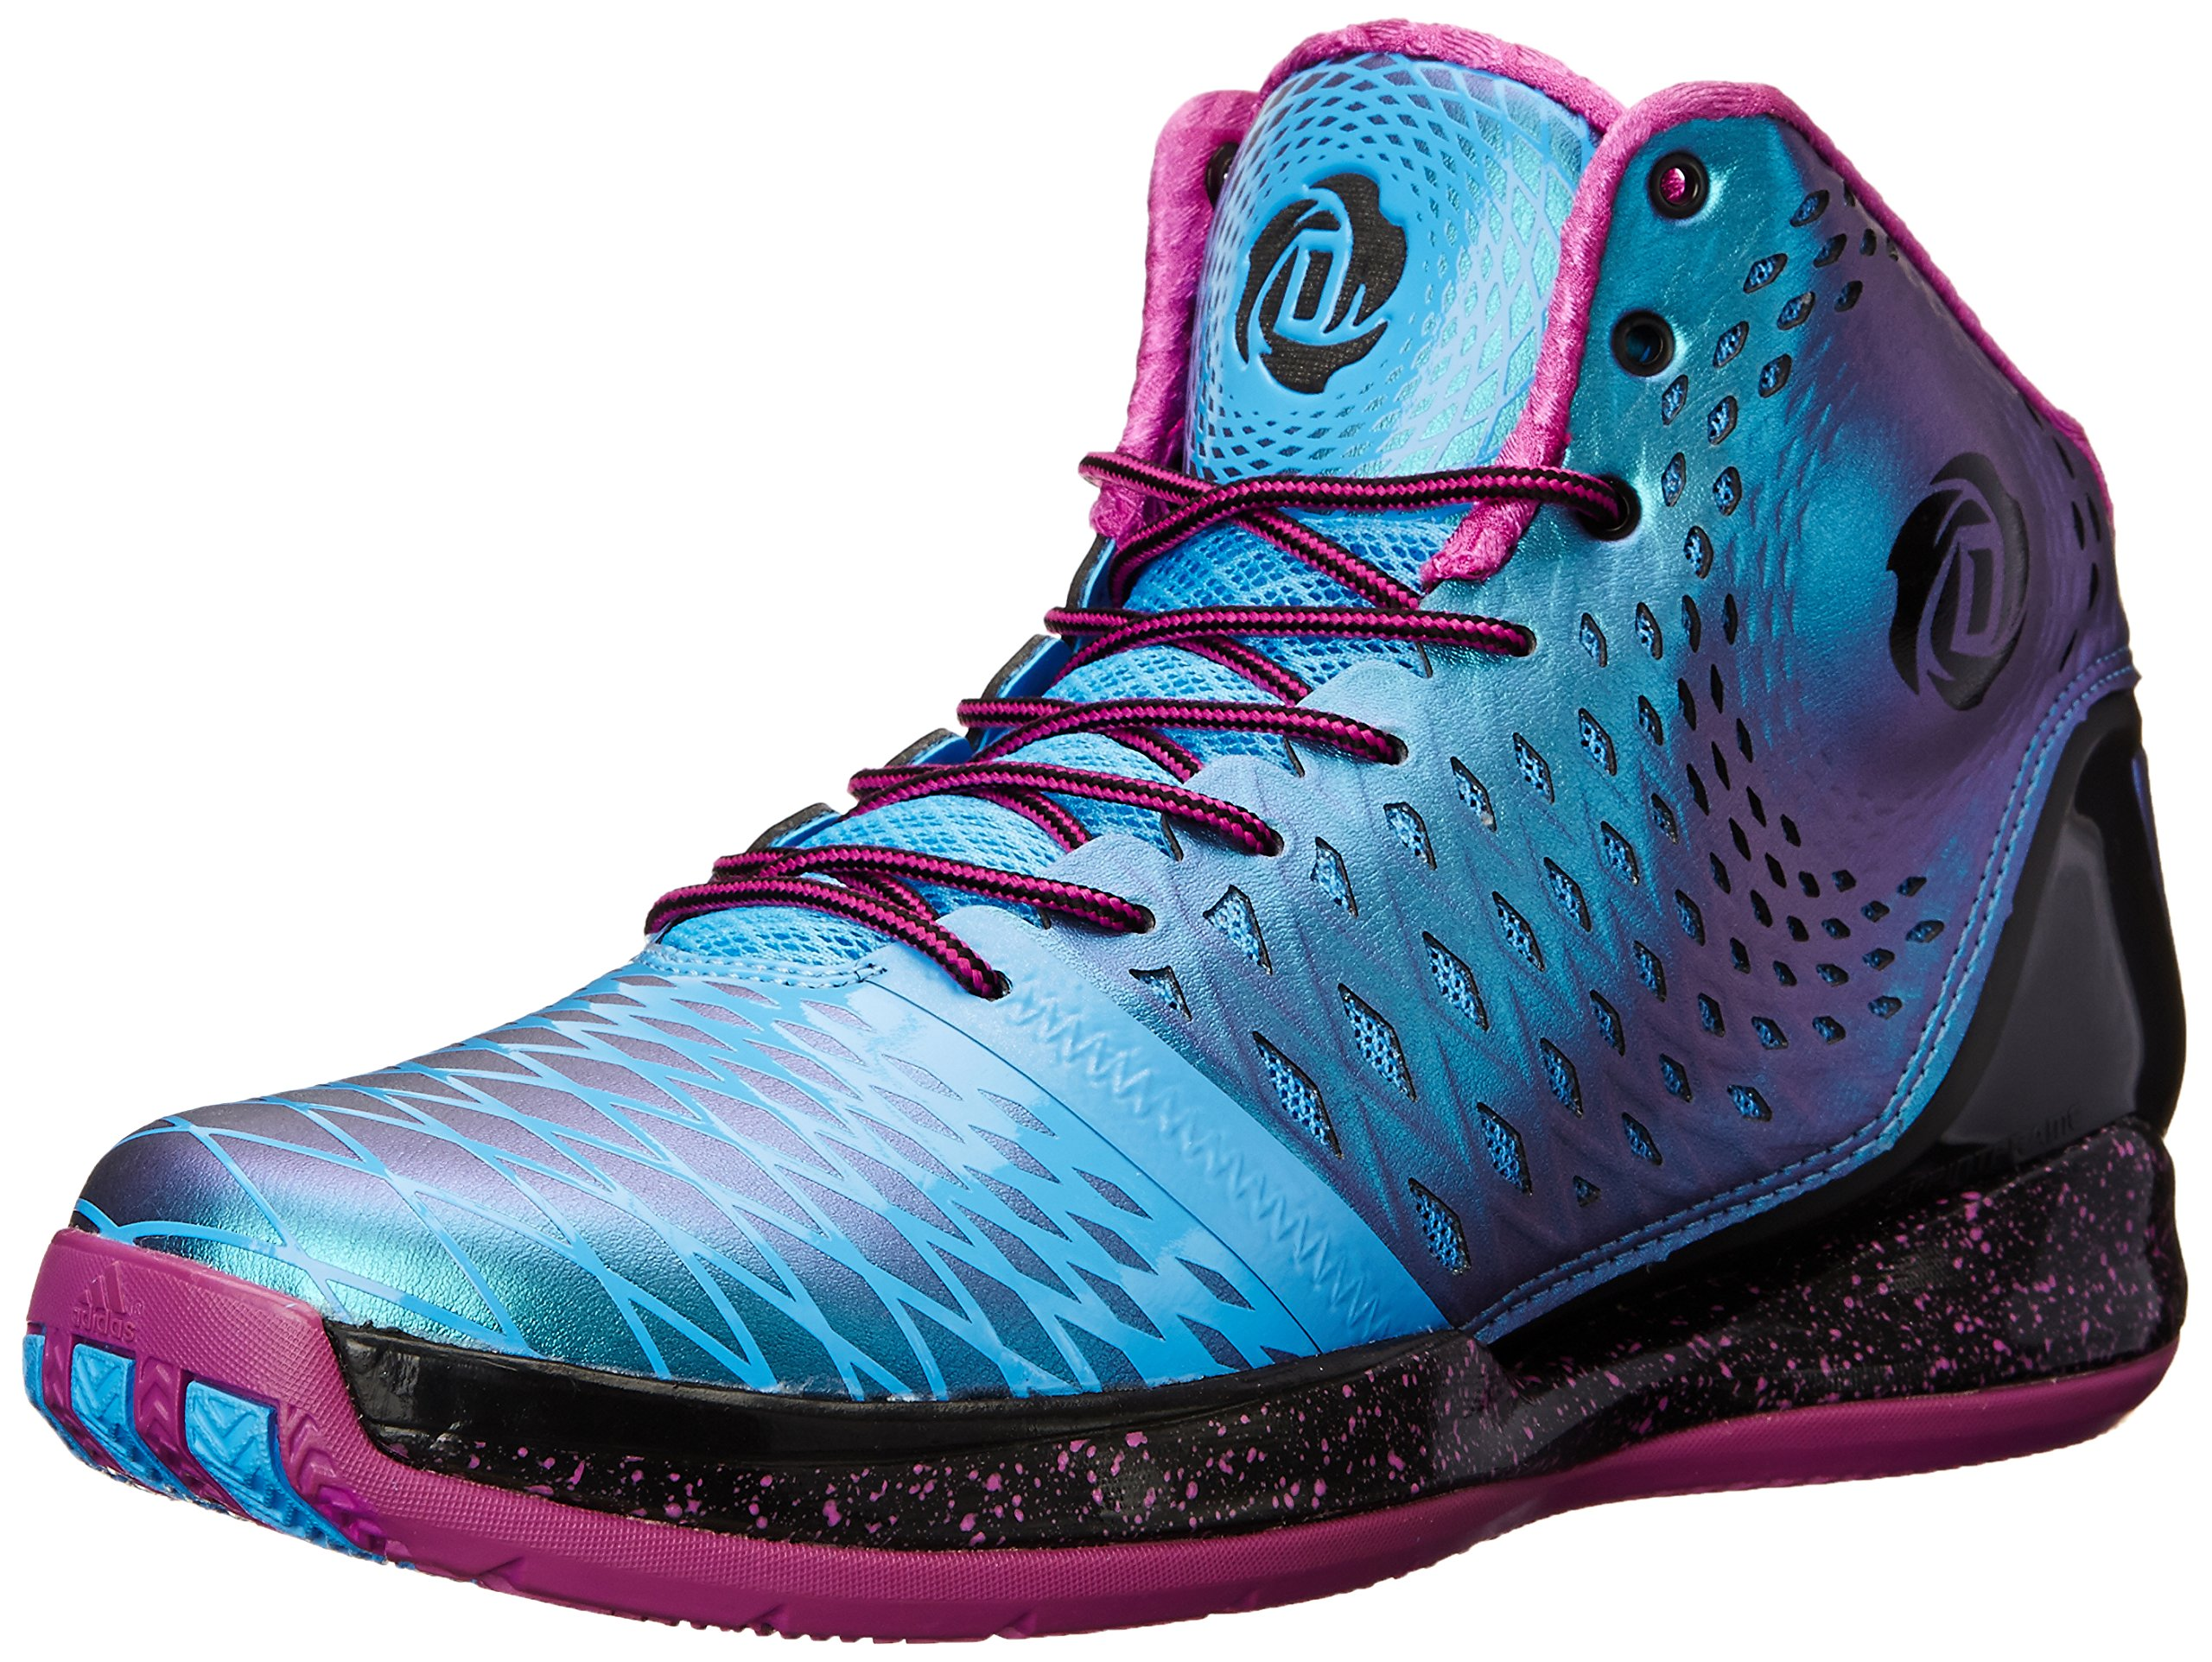 fdc4ec2ab5c0 Galleon - Adidas Performance Men s D Rose 3.5 Basketball Shoe